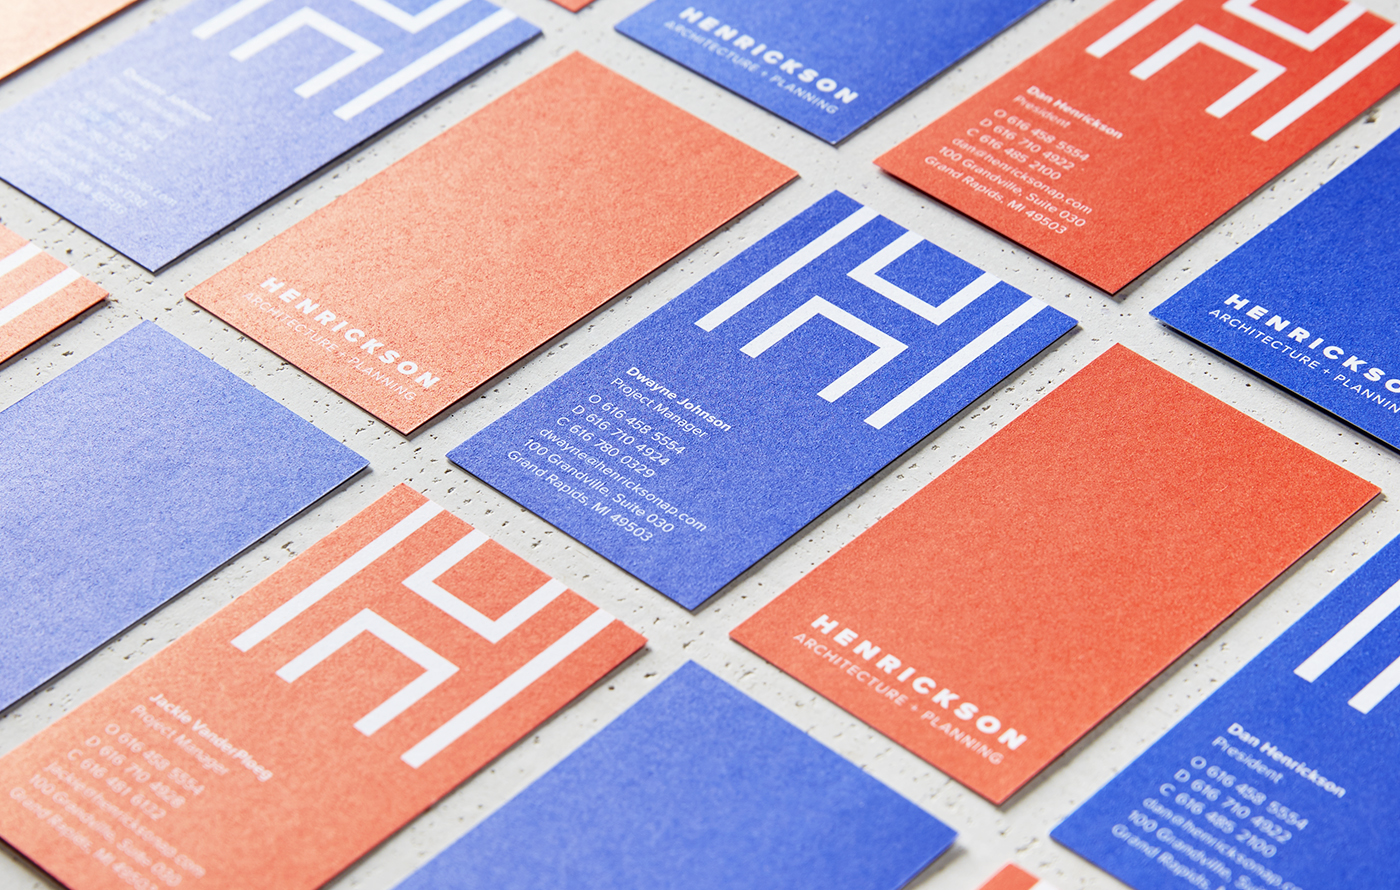 Henrickson Architecture business cards.